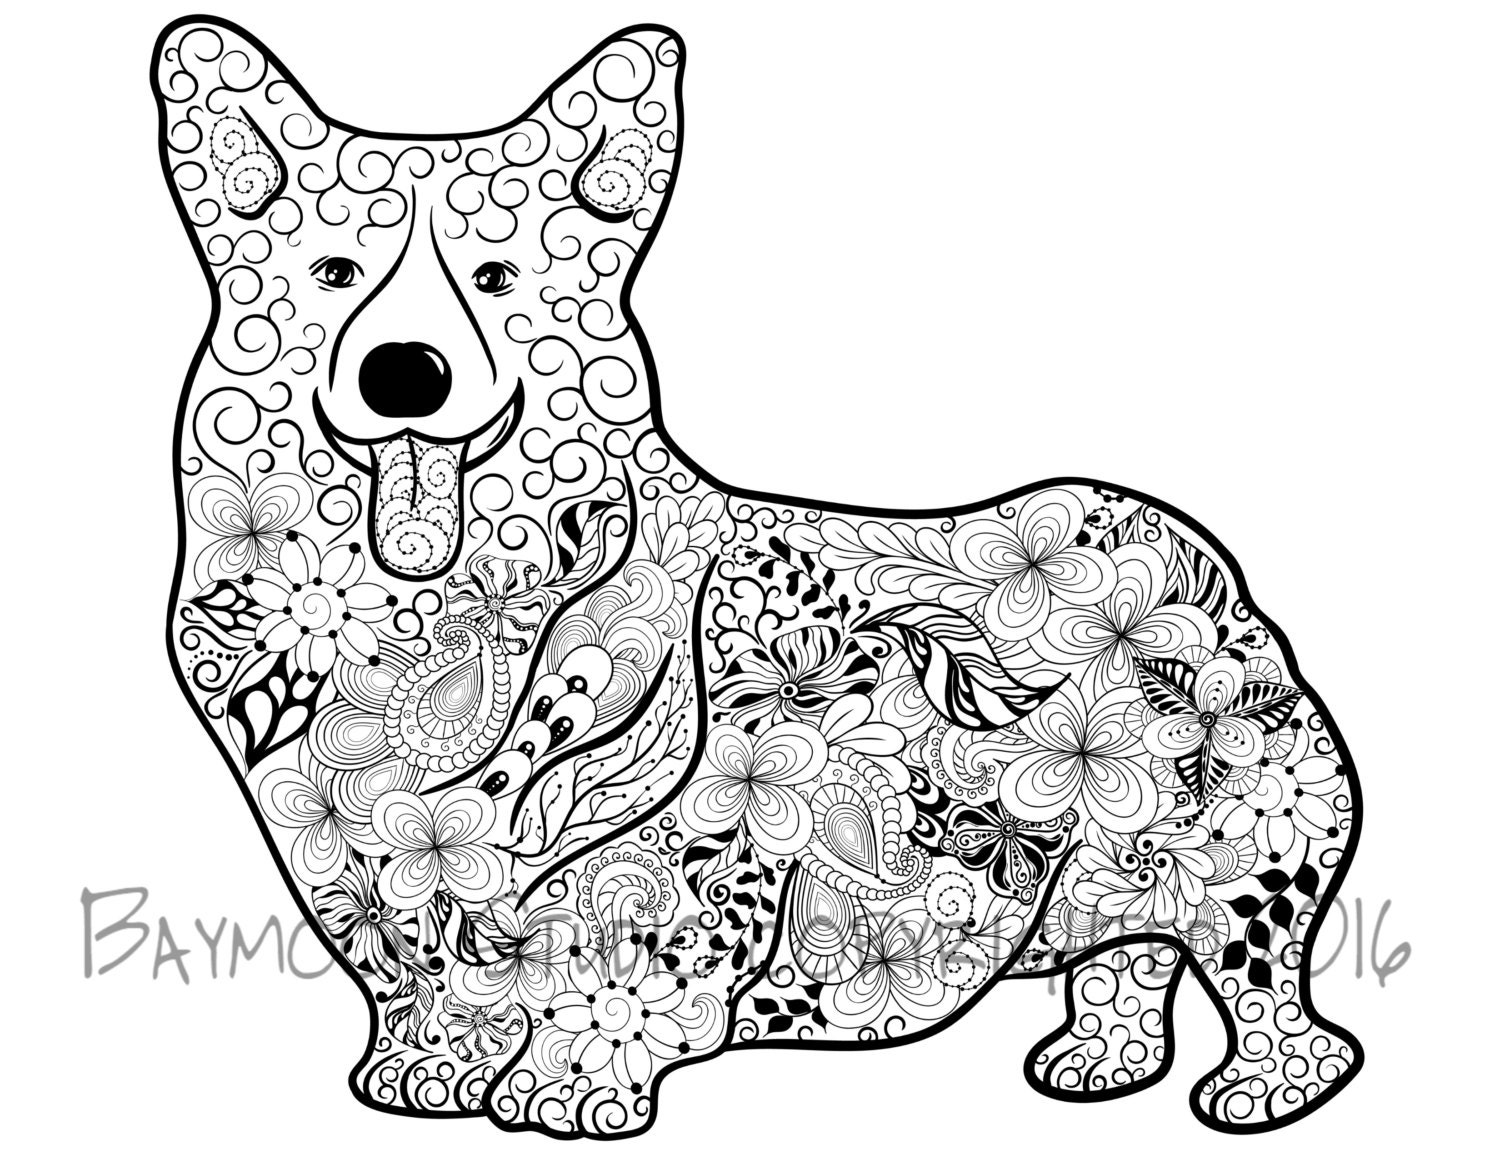 corgi coloring pages - the gallery for corgi coloring pages